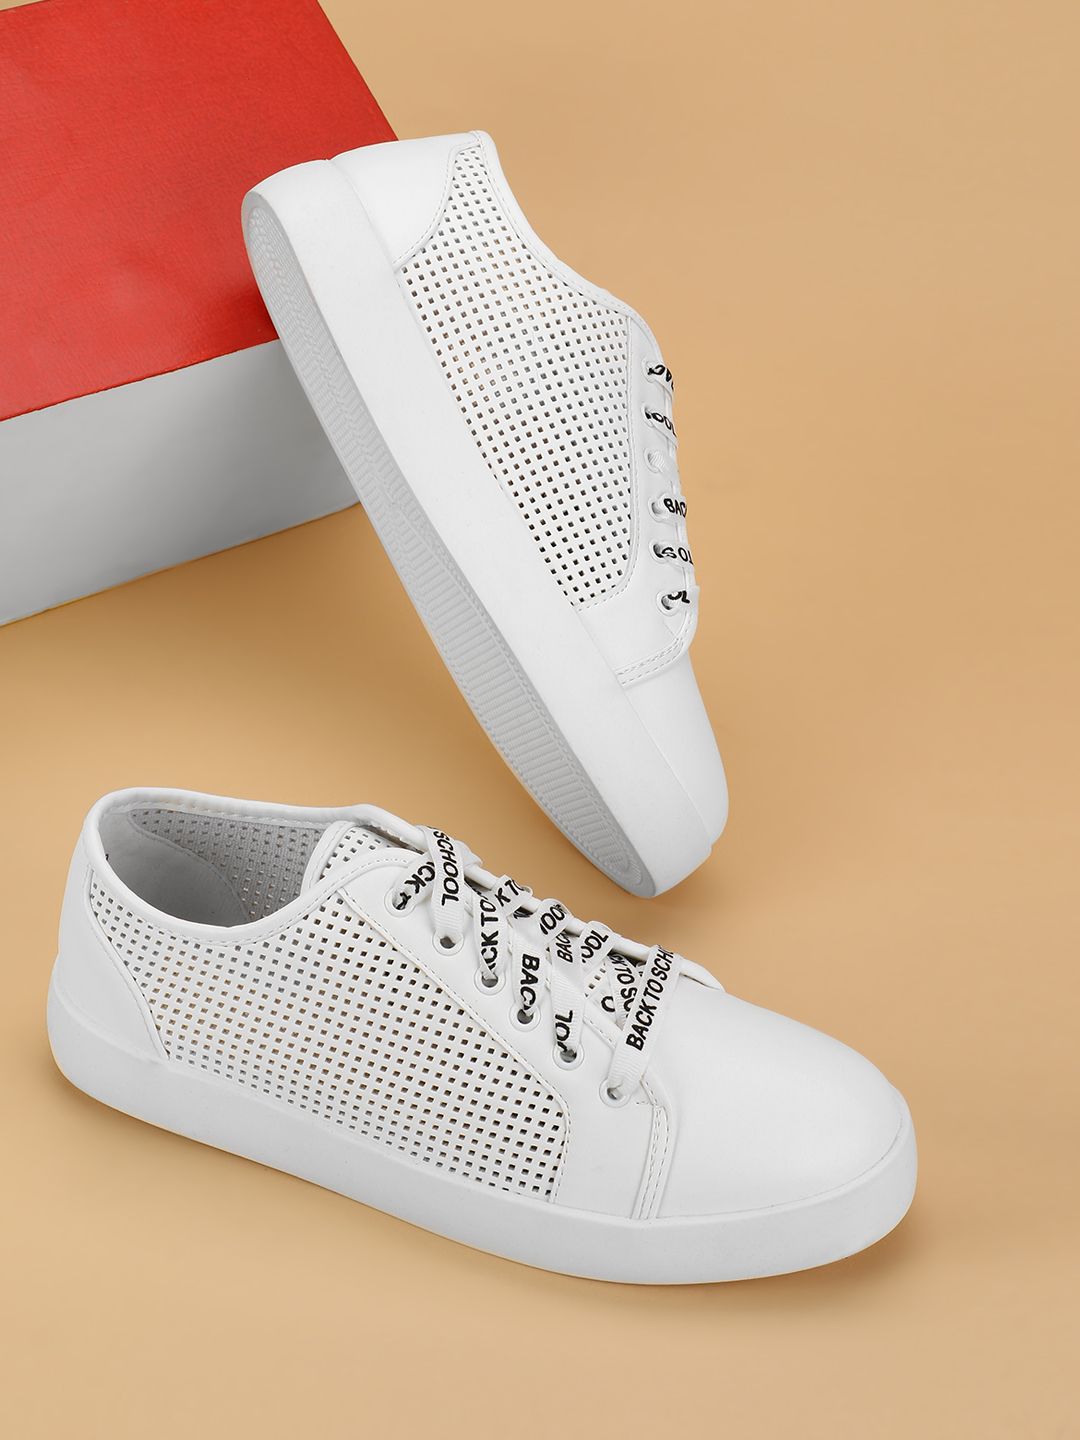 My Foot Couture White Perforated Printed Lace Up Sneakers 1